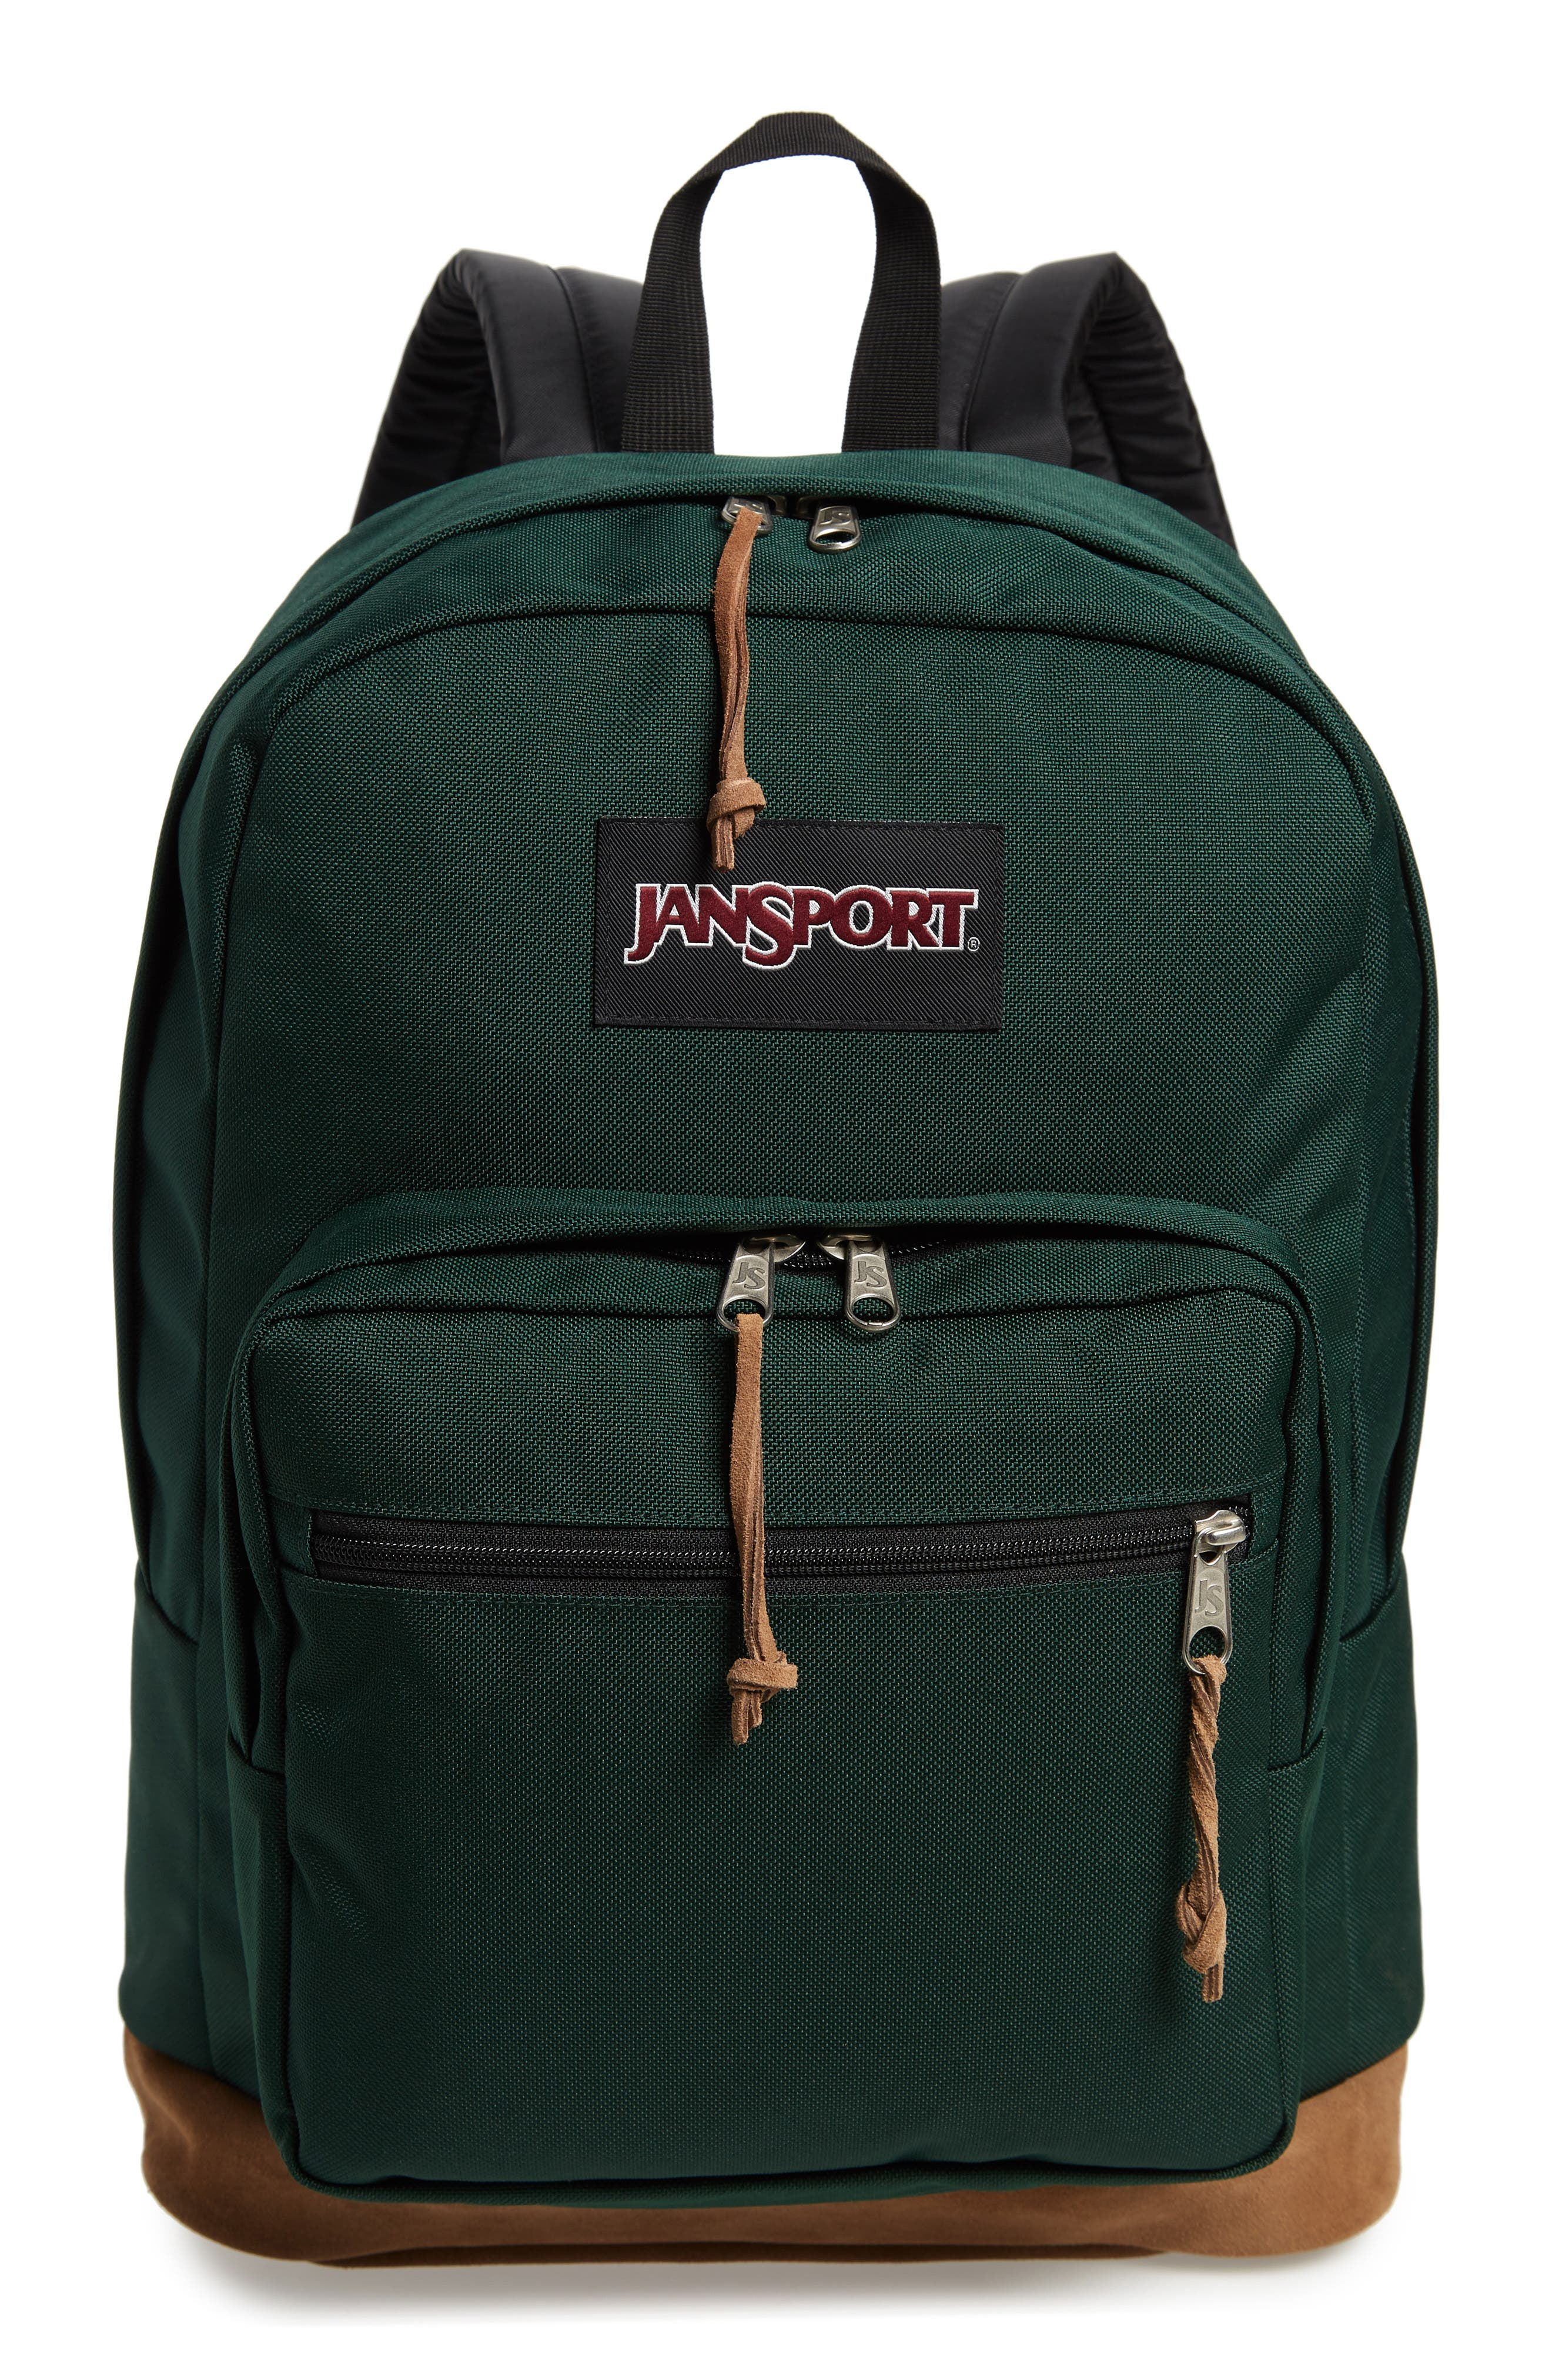 JANSPORT RIGHT PACK BACKPACK - GREEN